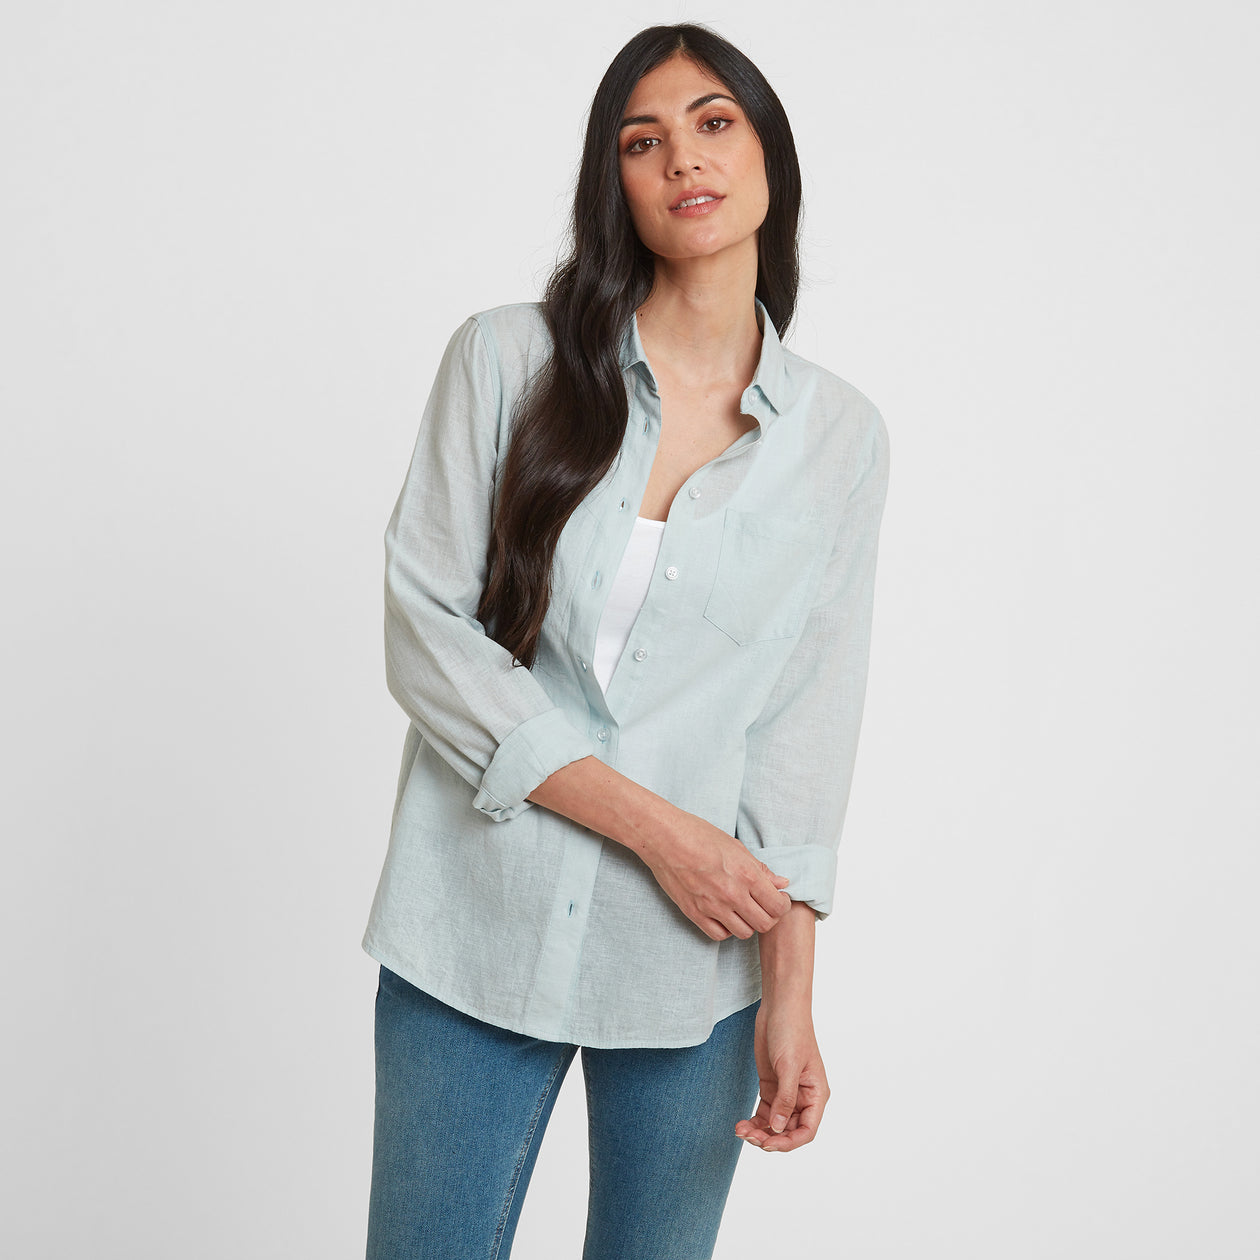 Blyth Womens Long Sleeve Linen Shirt - Ice Blue image 4